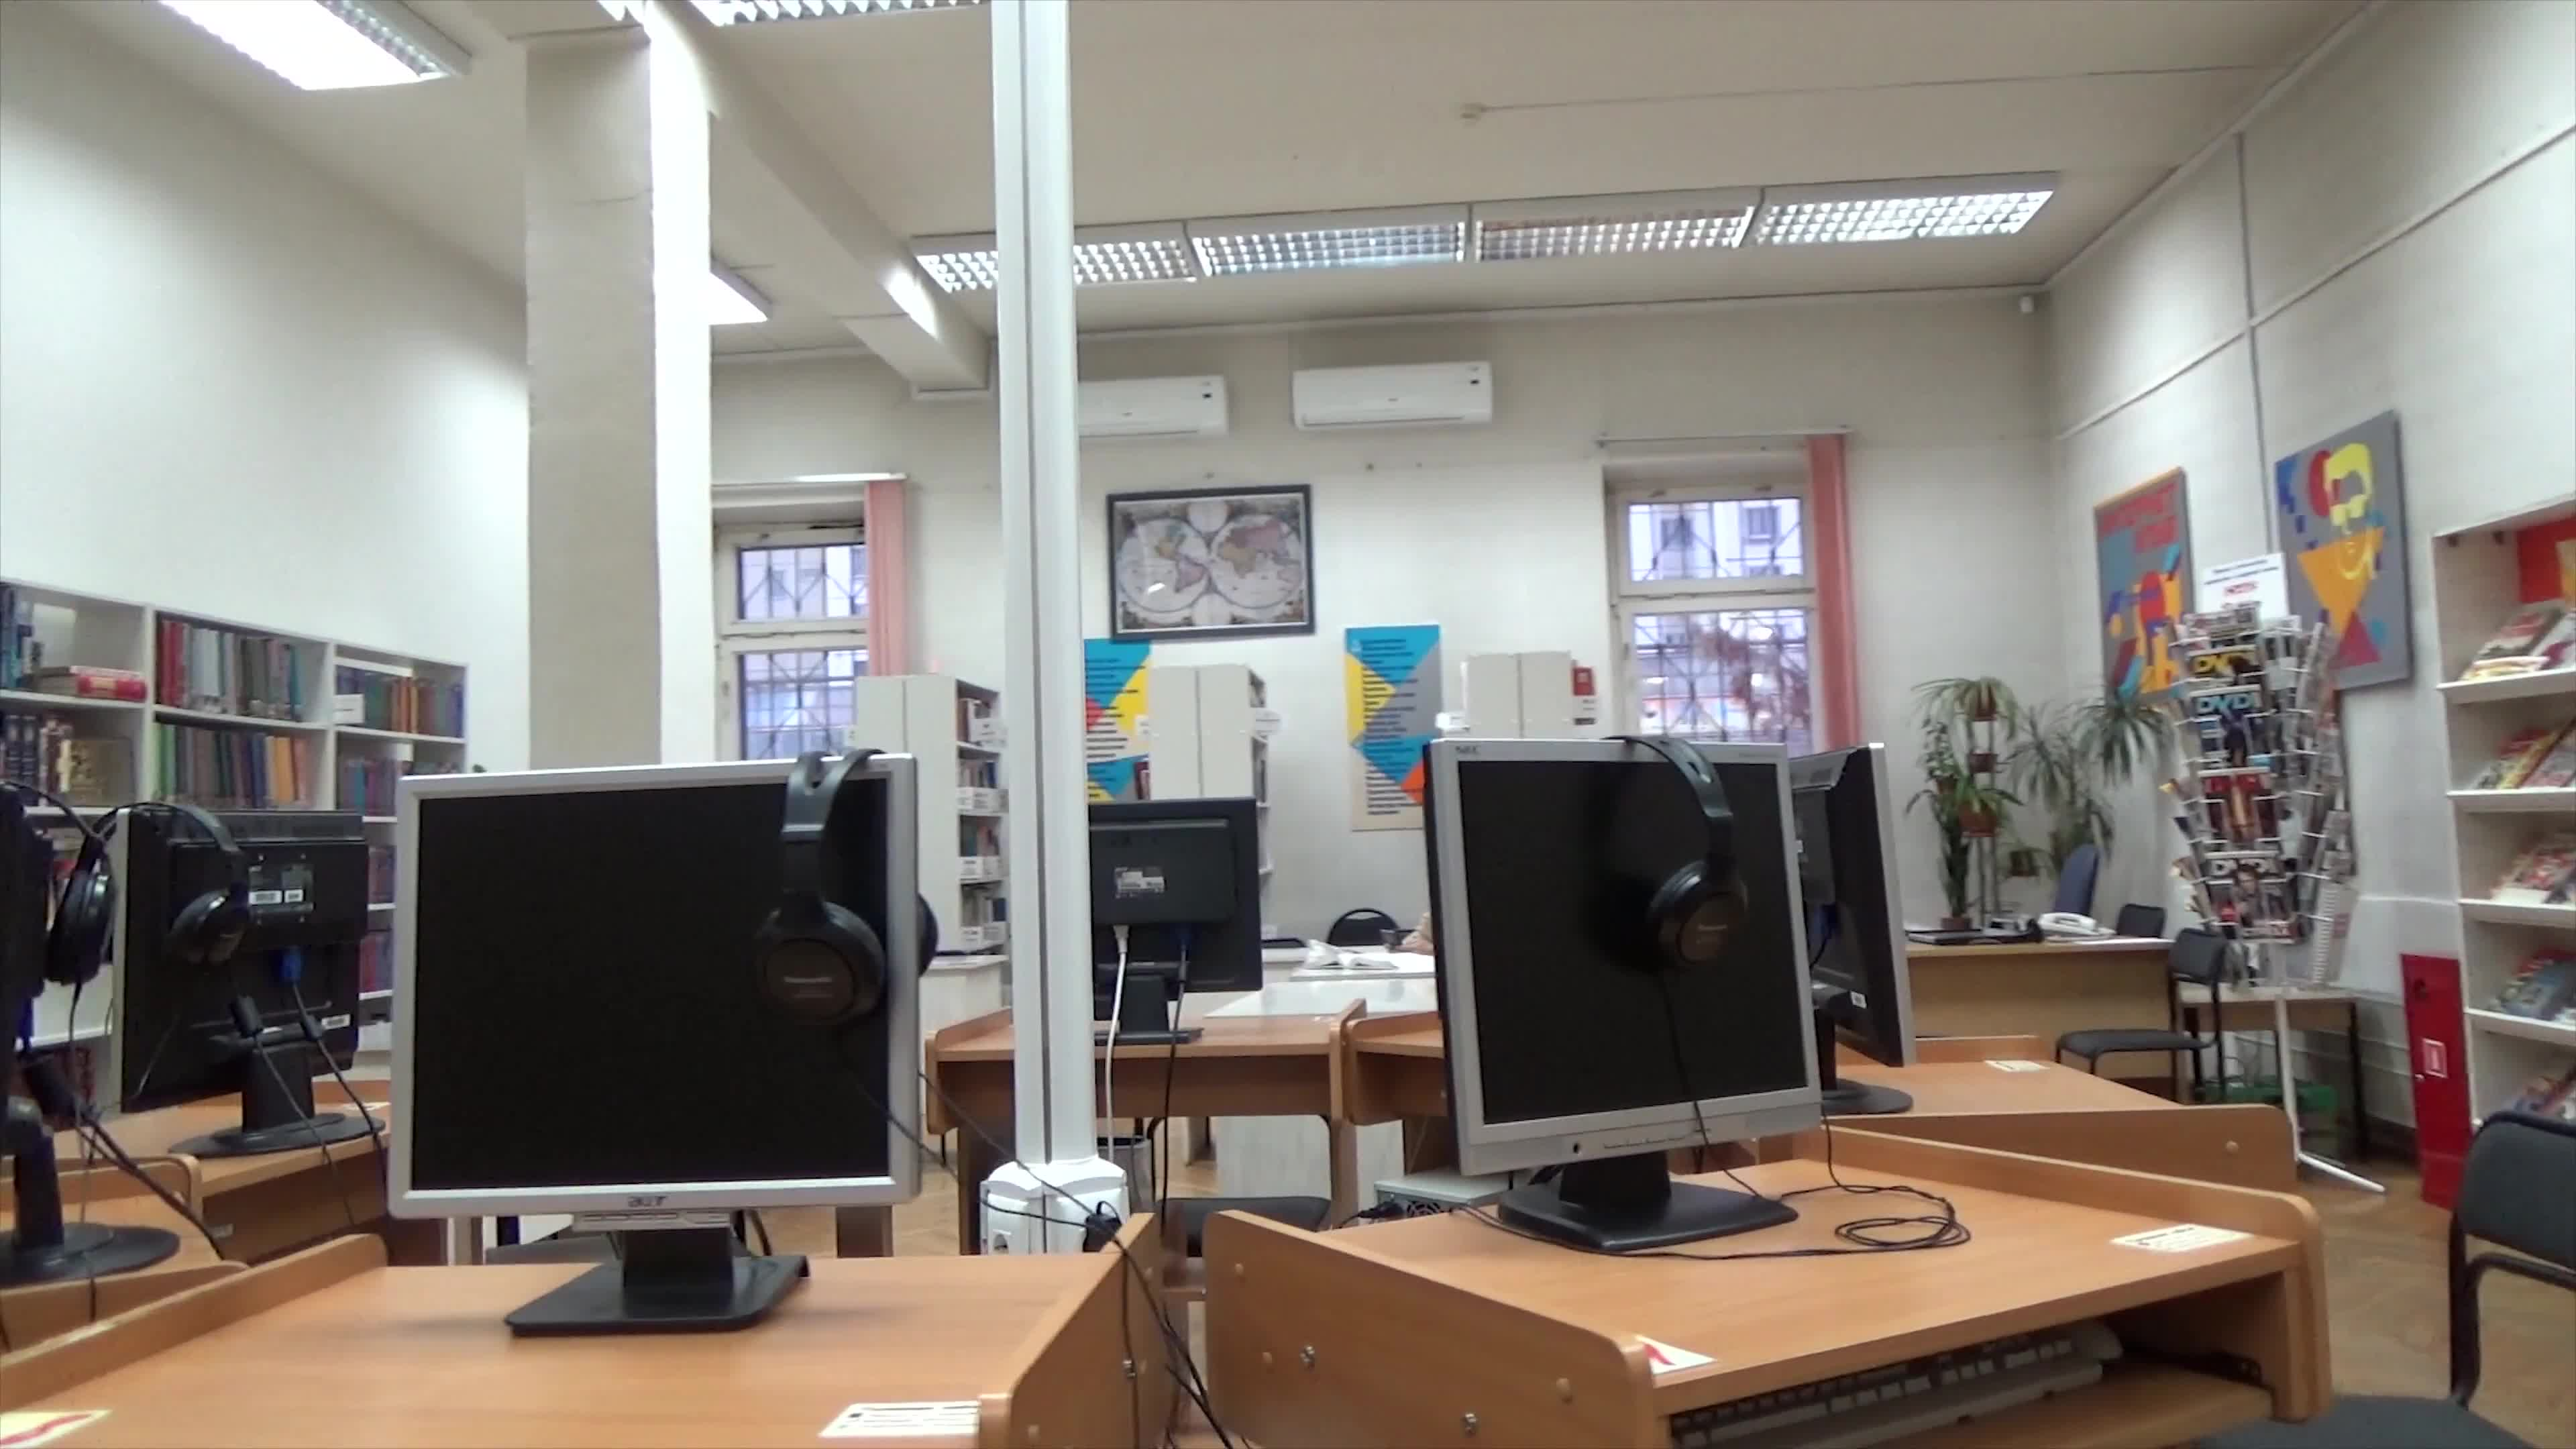 360 video of computers inside a library